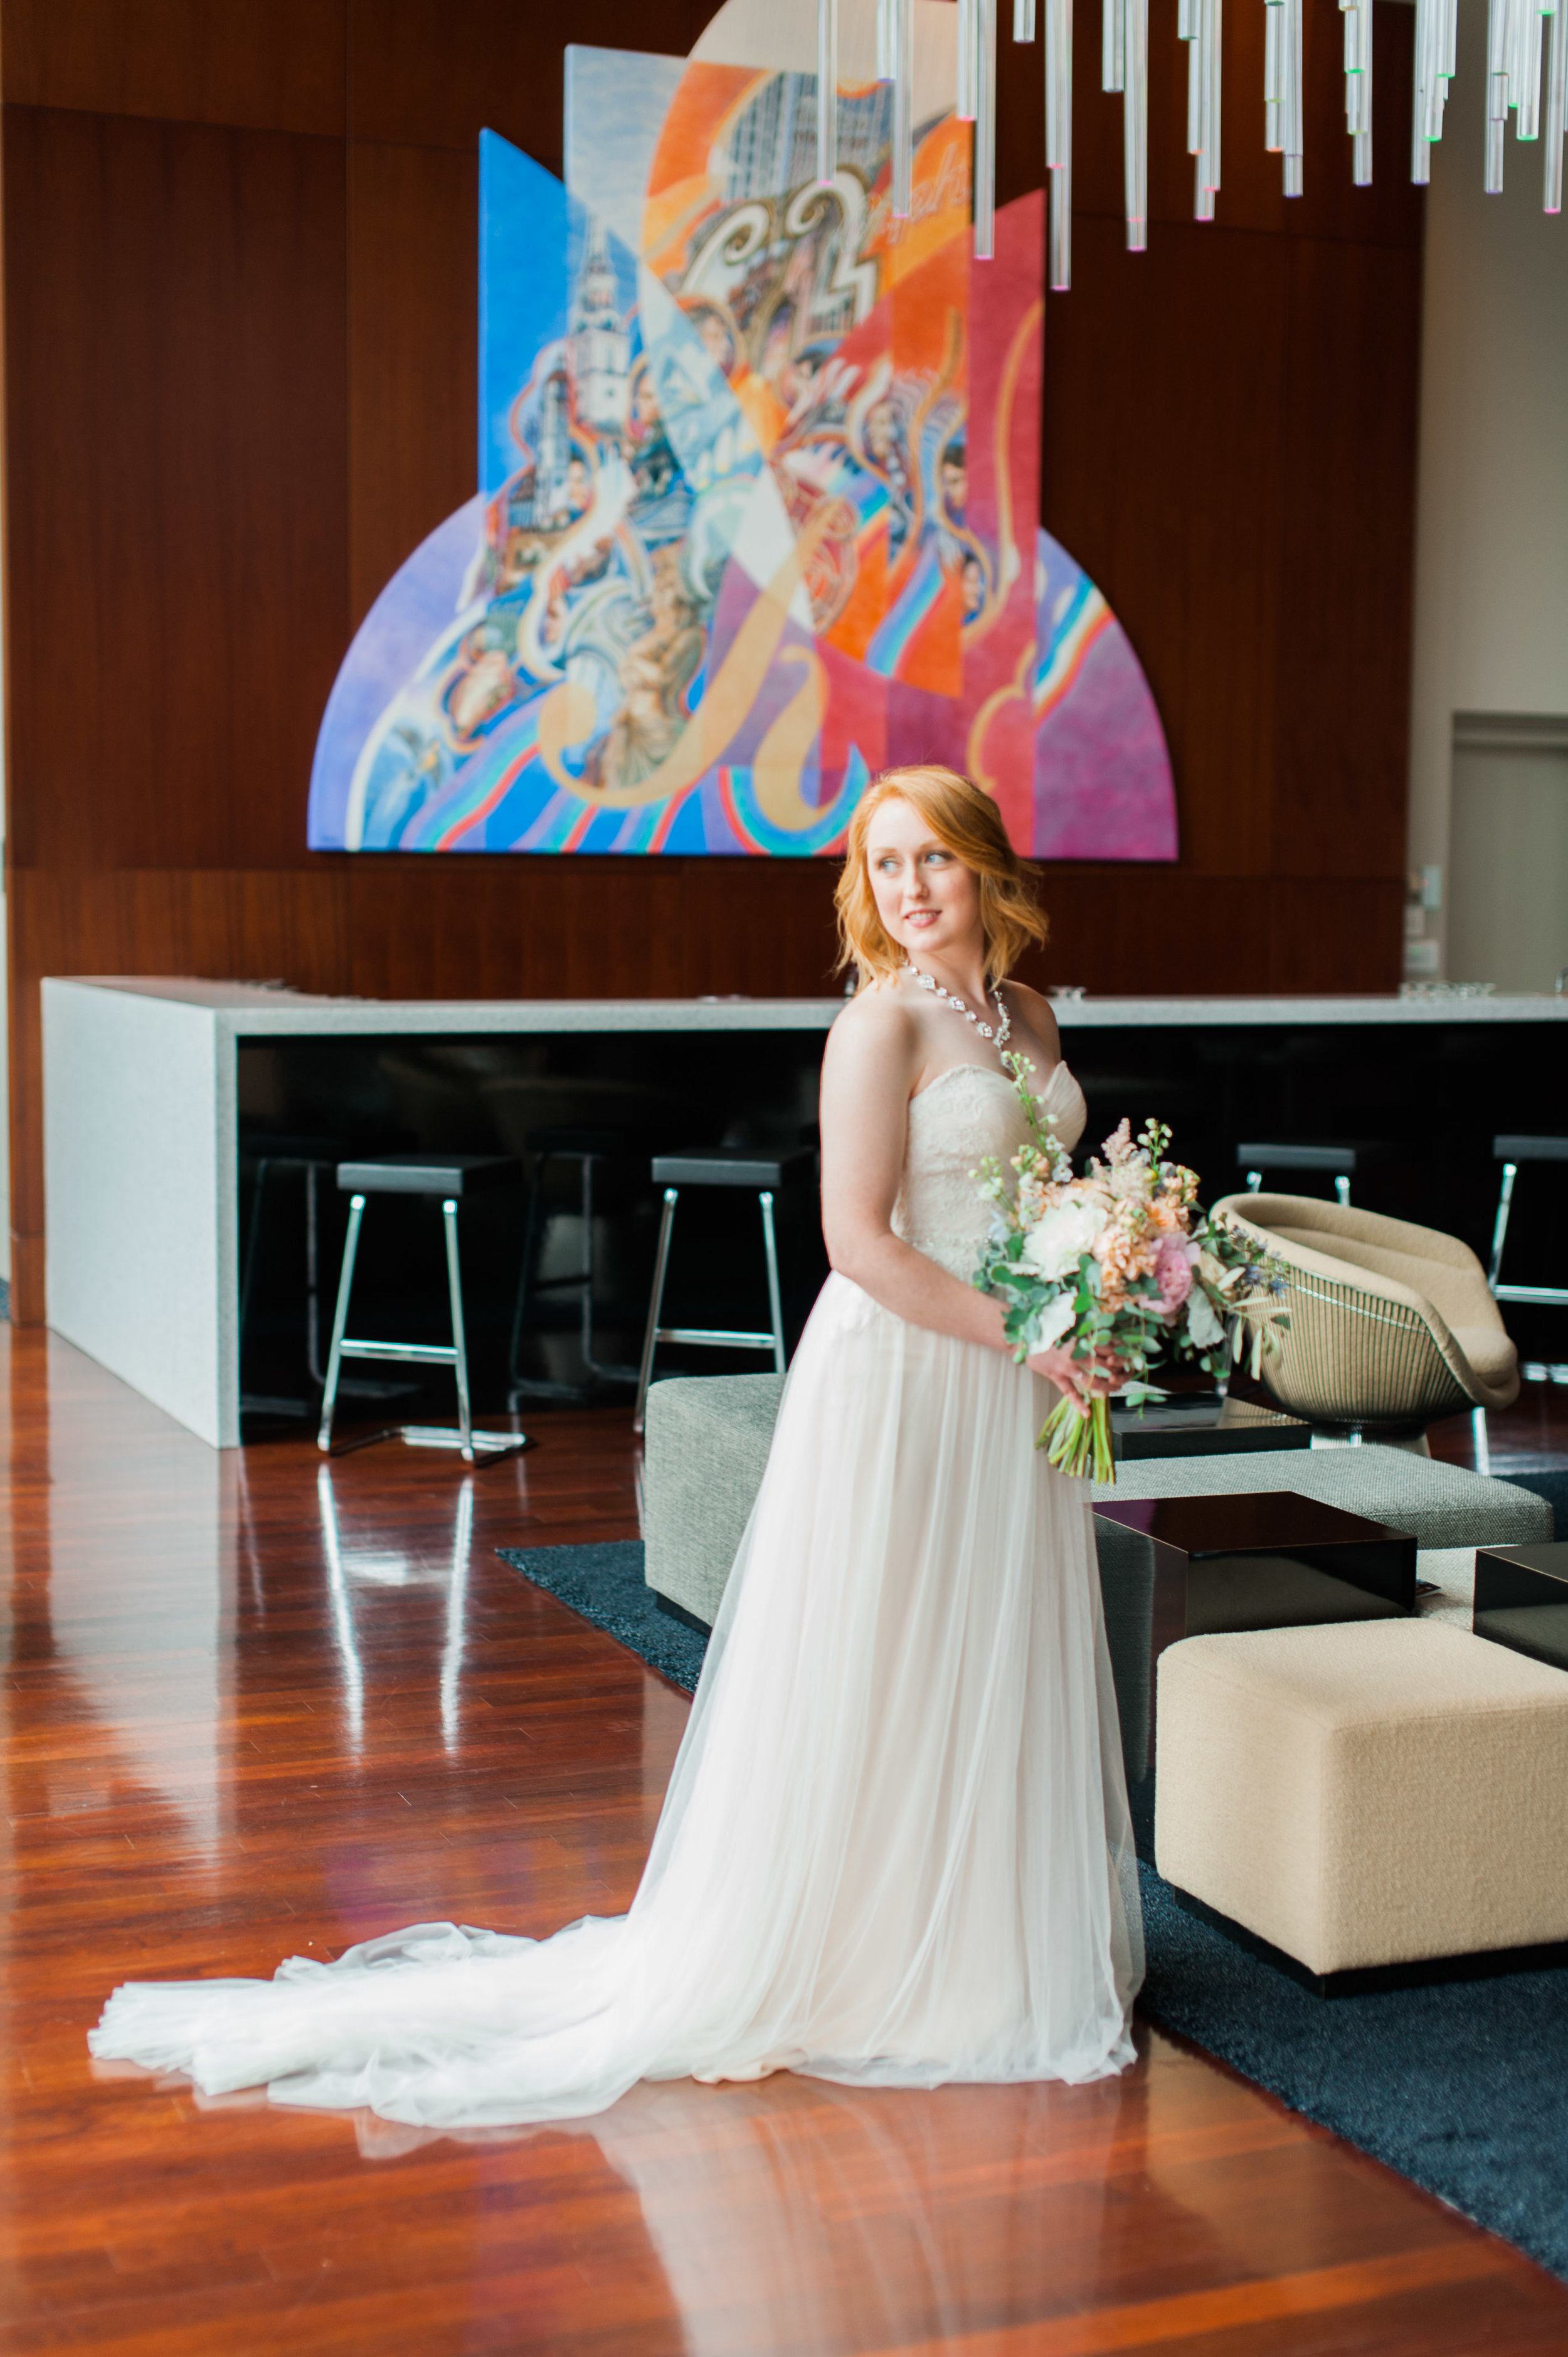 omaha-holland-arts-center-wedding-39.jpg